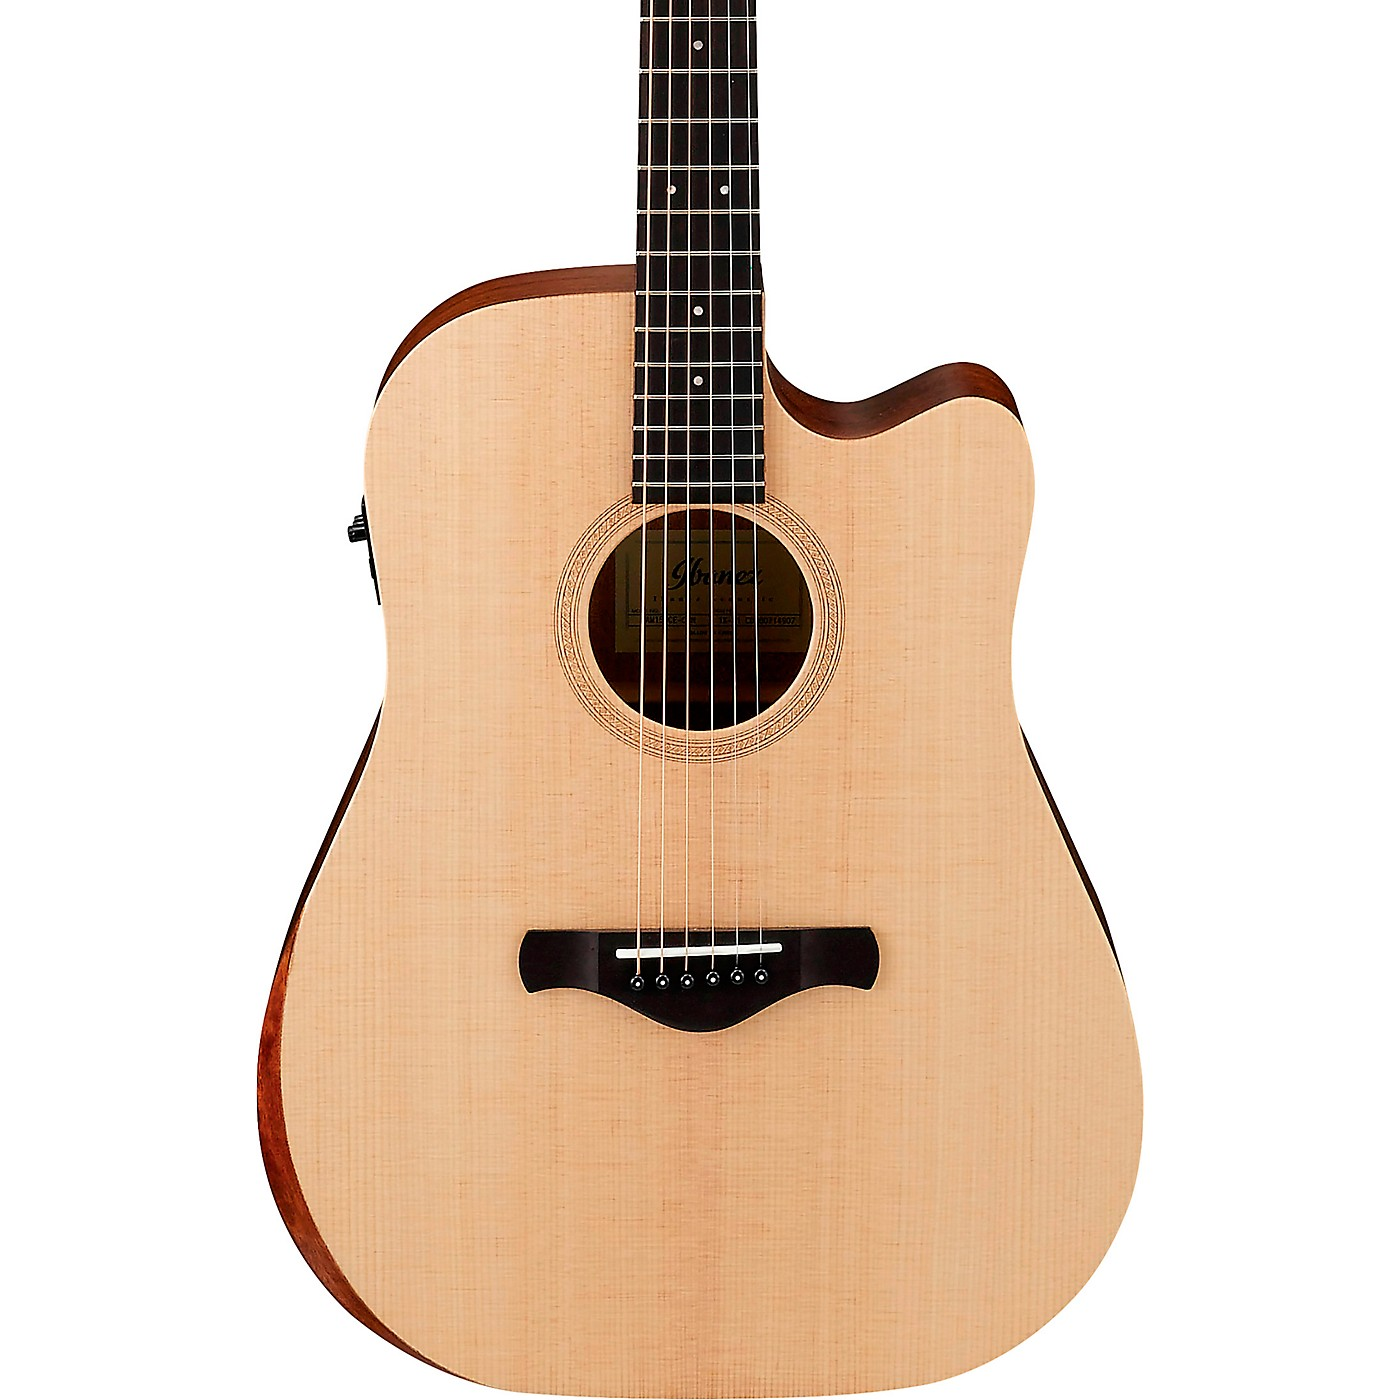 Ibanez AW150CE Artwood Unbound Dreadnought Acoustic-Electric Guitar thumbnail